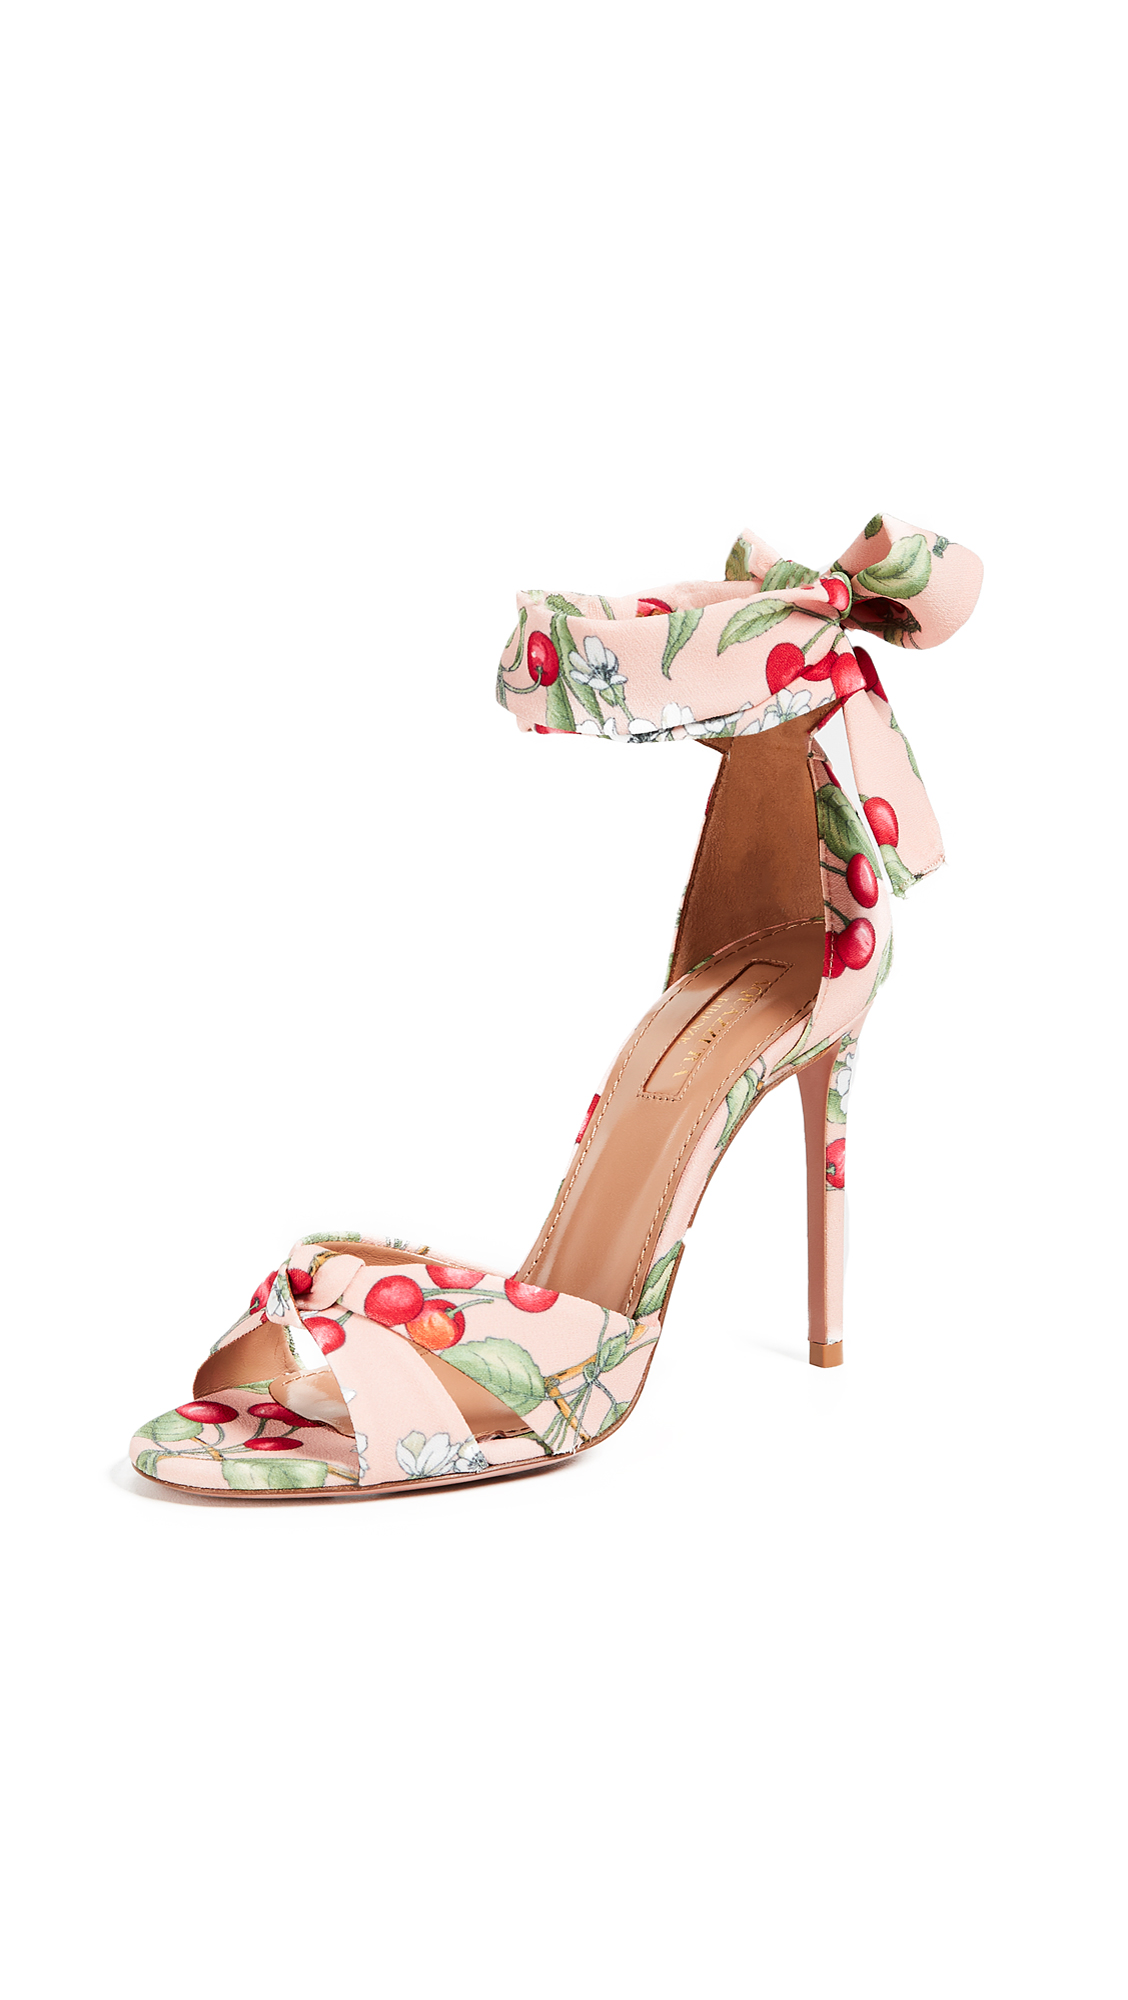 Aquazzura All Tied Up 105mm Sandals - Jaipur Pink